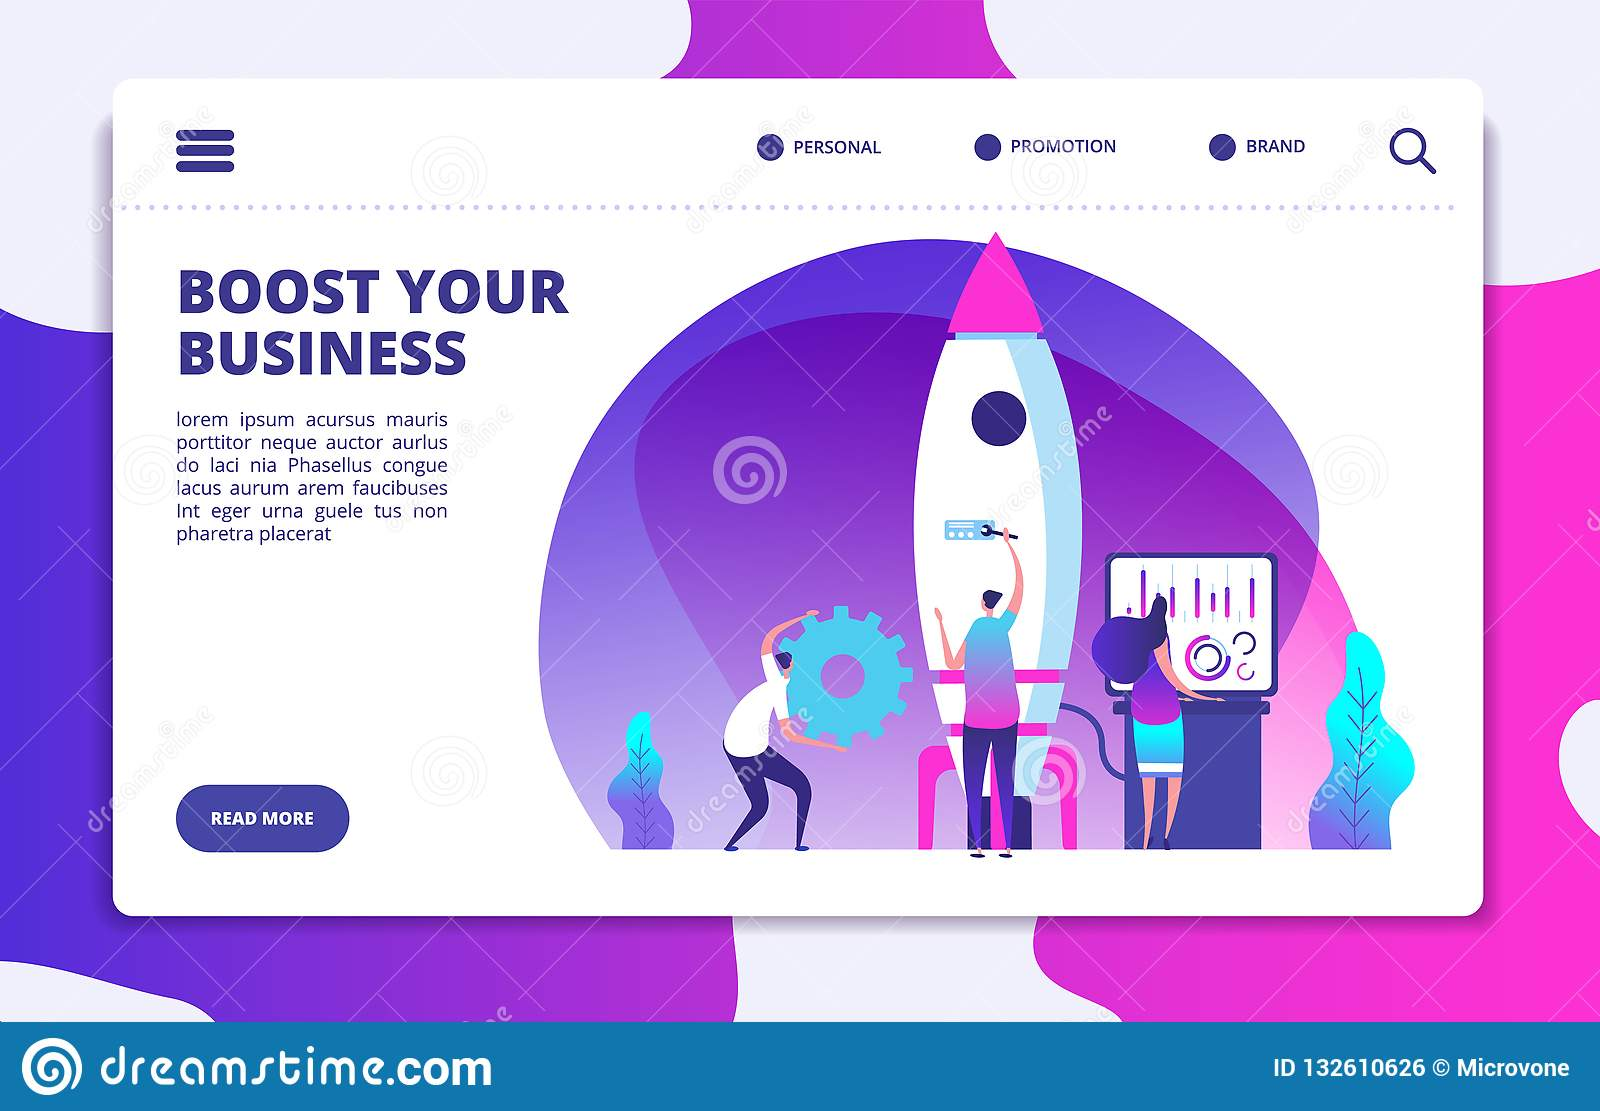 Startup website landing page. People launching rocket. Boost business easy. Customized vector concept